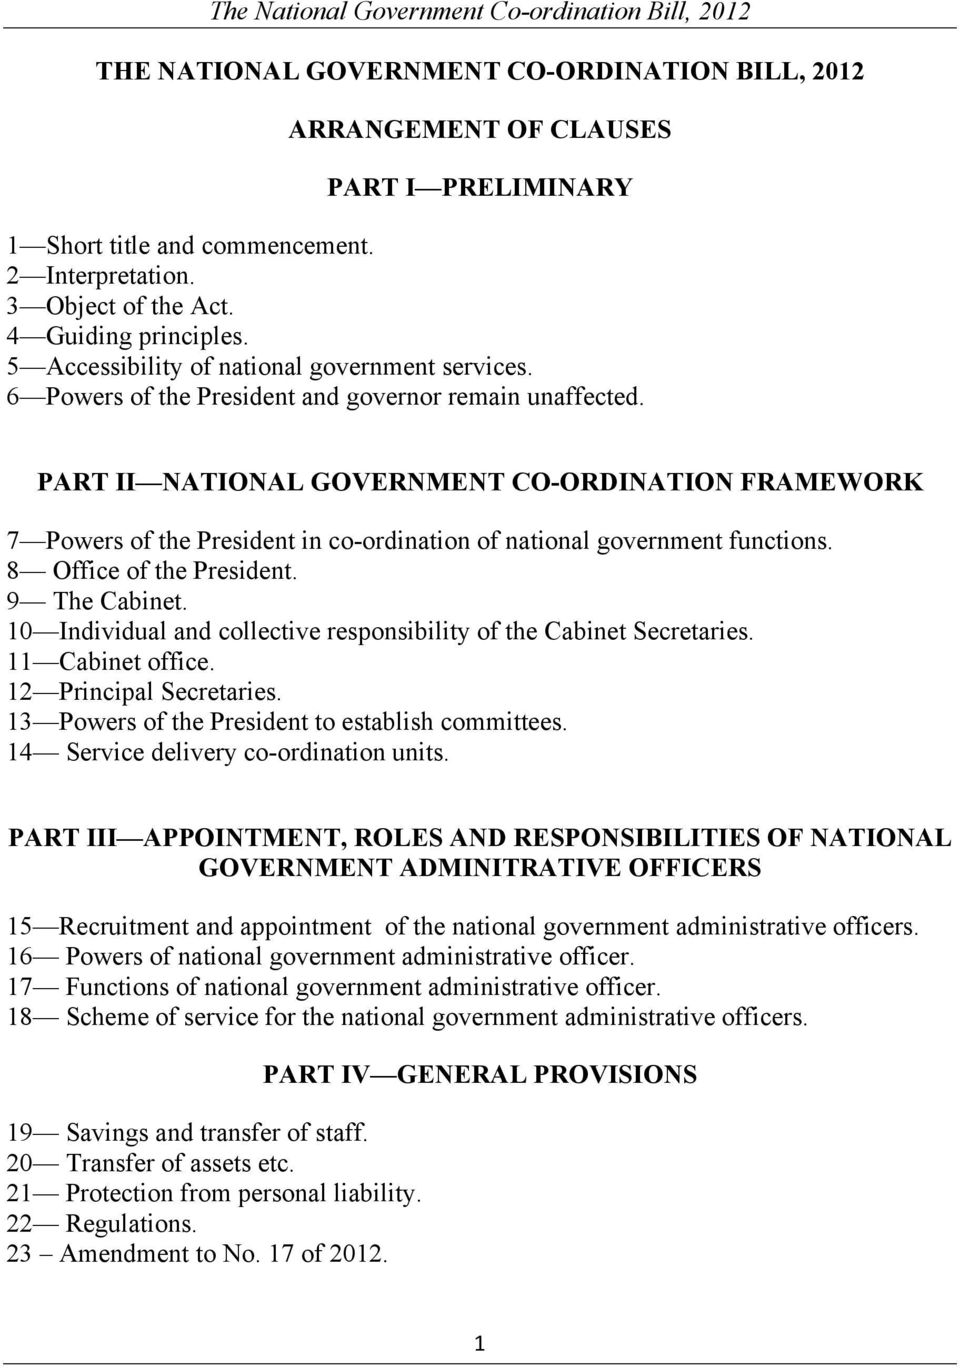 PART II NATIONAL GOVERNMENT CO-ORDINATION FRAMEWORK 7 Powers of the President in co-ordination of national government functions. 8 Office of the President. 9 The Cabinet.